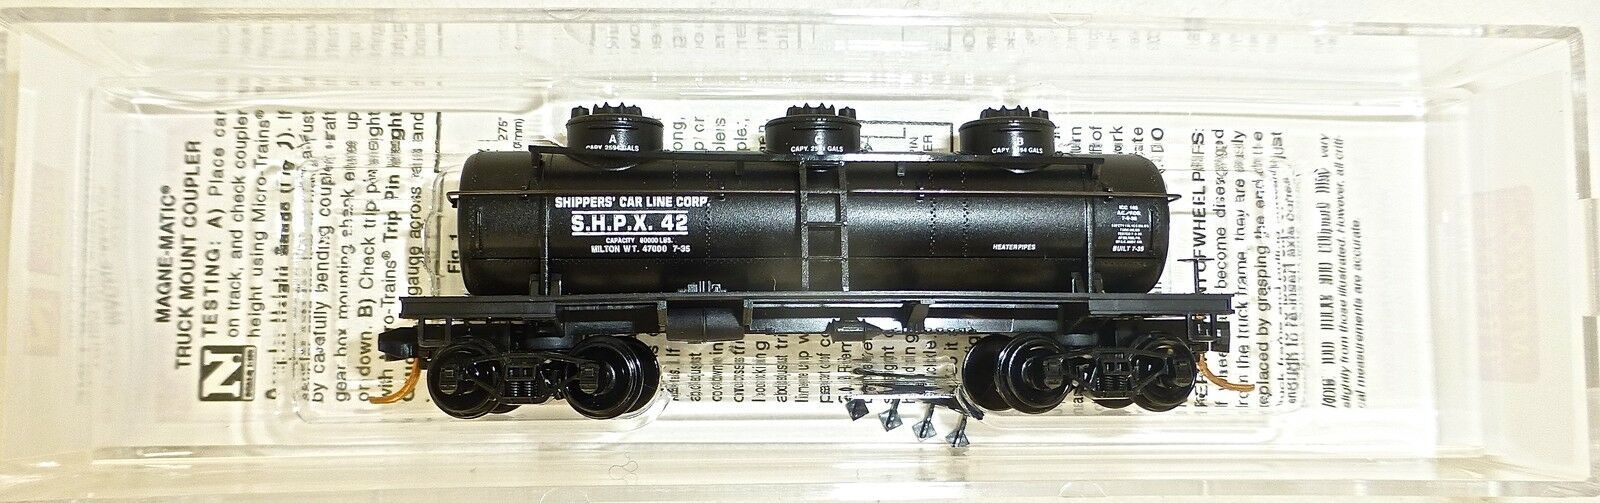 Shippers Tanque Linea Corp 3 Domo Tanker Micro Trains 066 00 070 1 160 Emb.orig